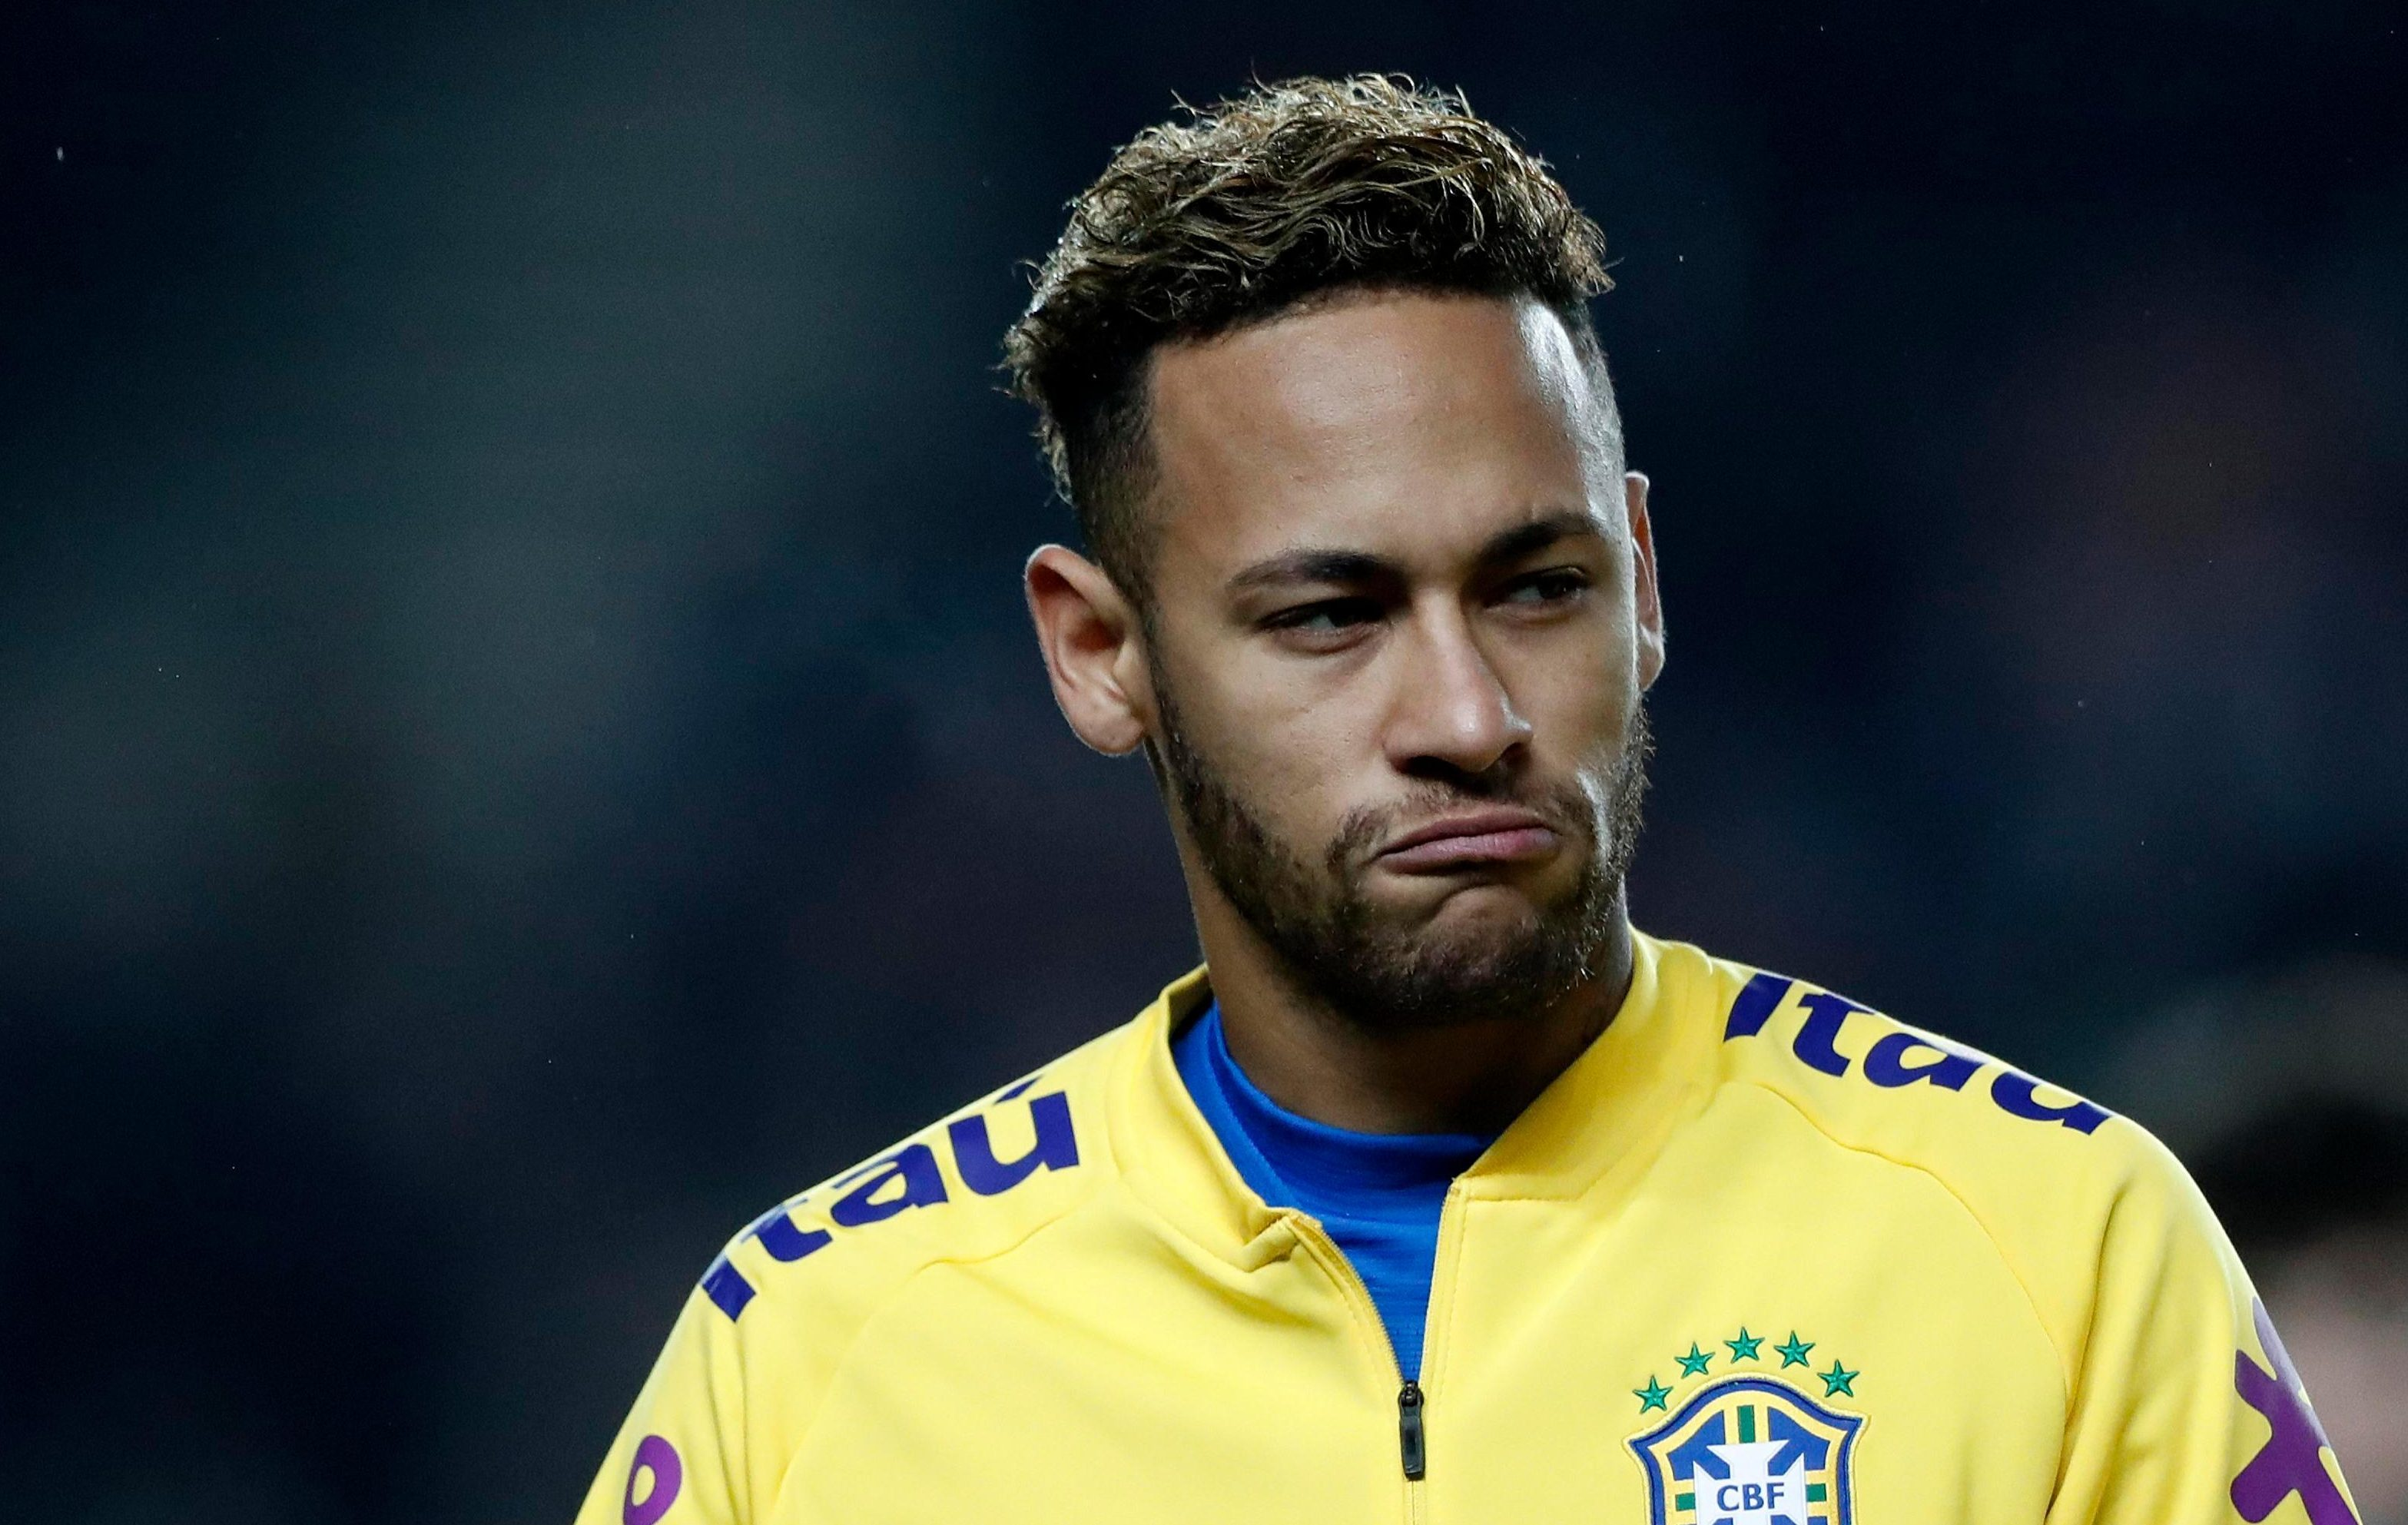 12pm Manchester United news: Neymar transfer, Antonio Valencia to West Ham, Fellaini hair pull